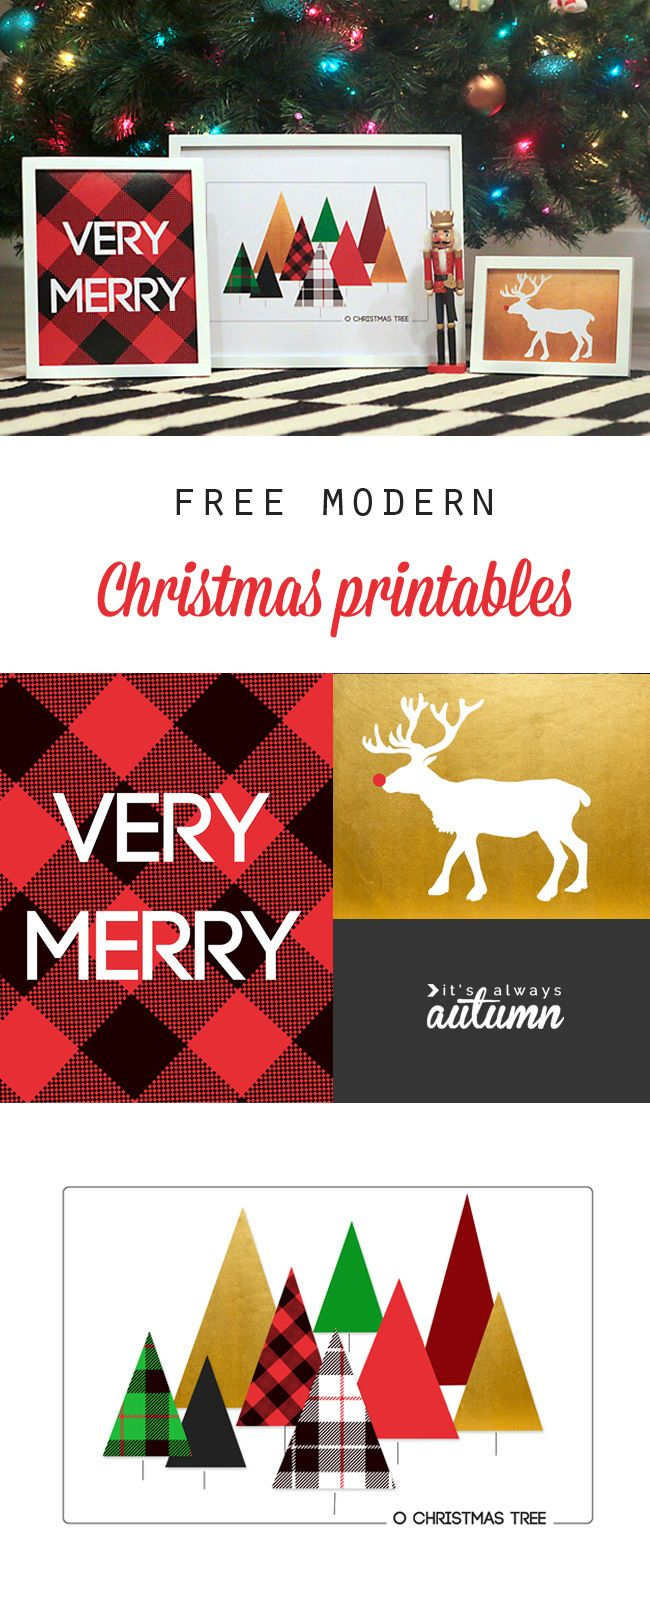 Modern Christmas printables - free Christmas prints and wall art for your home! | It's Always Autumn